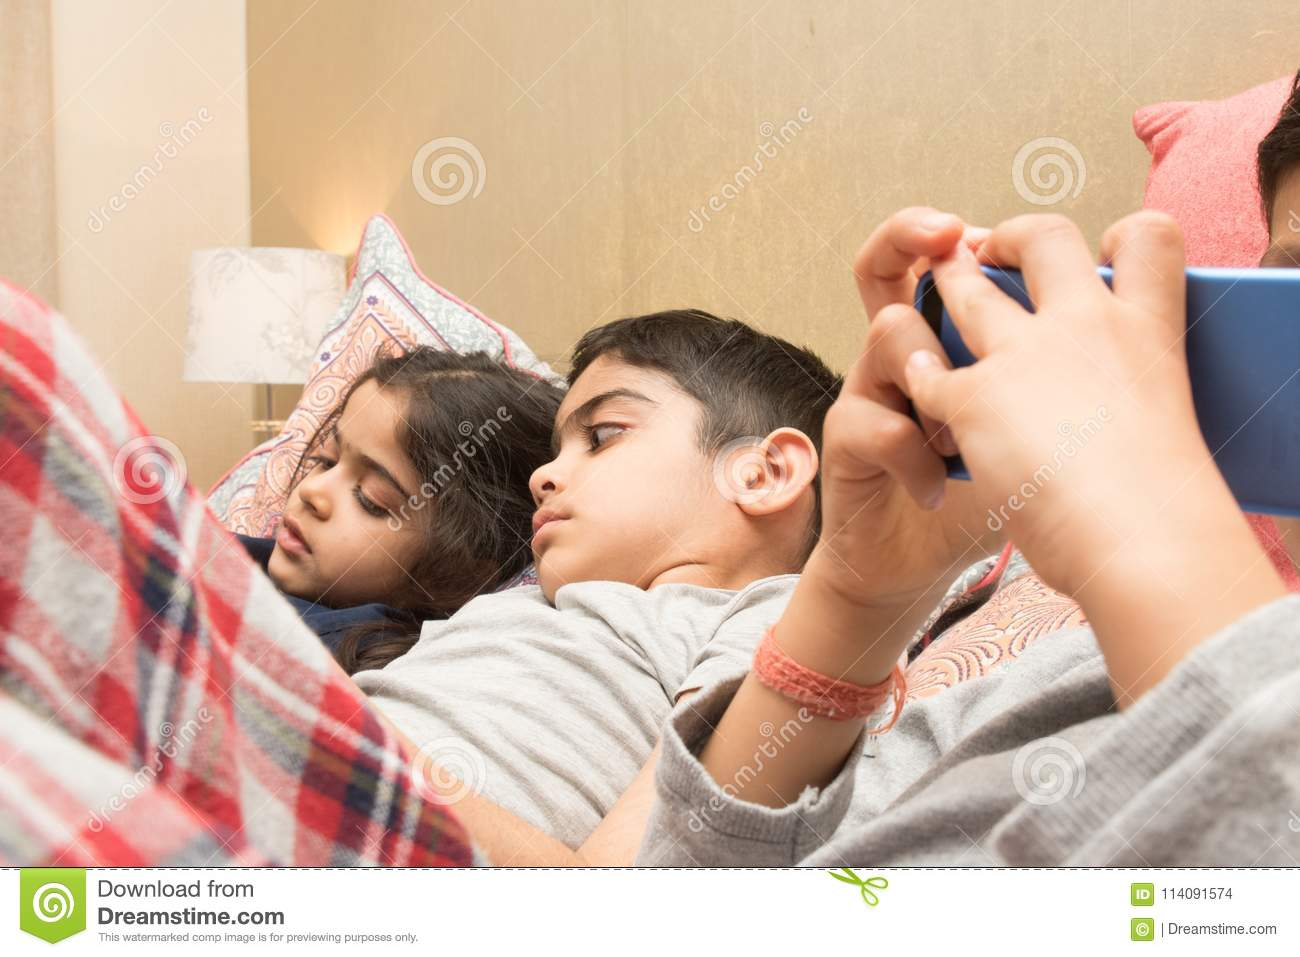 Three children with their electronic gadgets at bedtime.